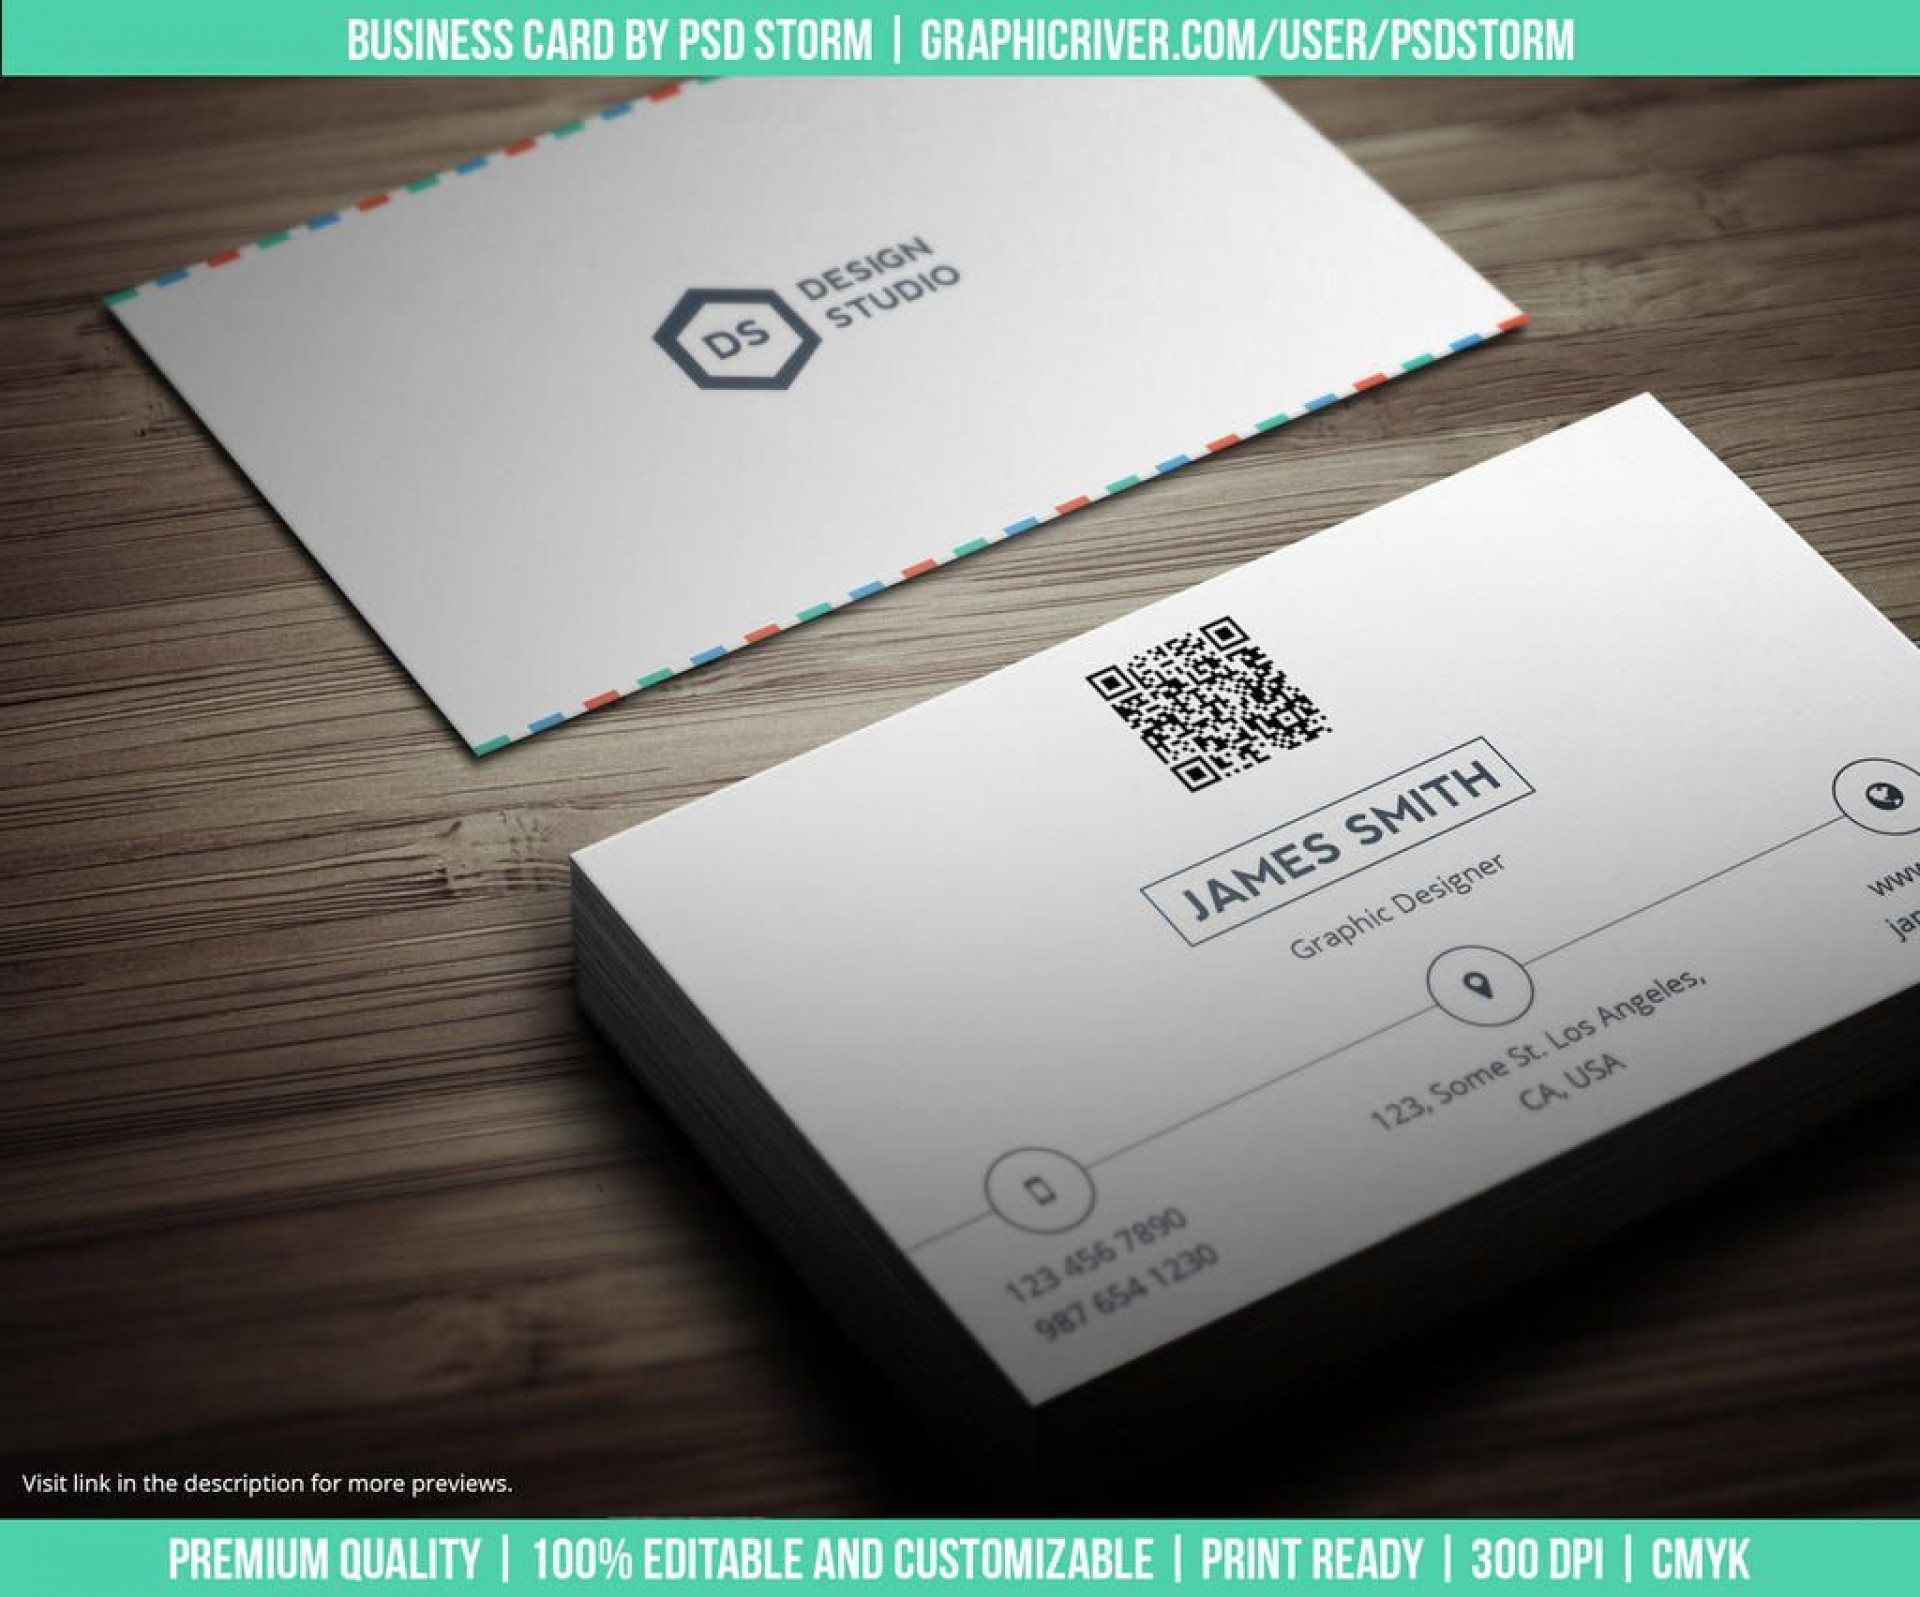 006 Awesome Minimal Busines Card Template Psd Photo  Simple Visiting Design In Photoshop File Free Download1920